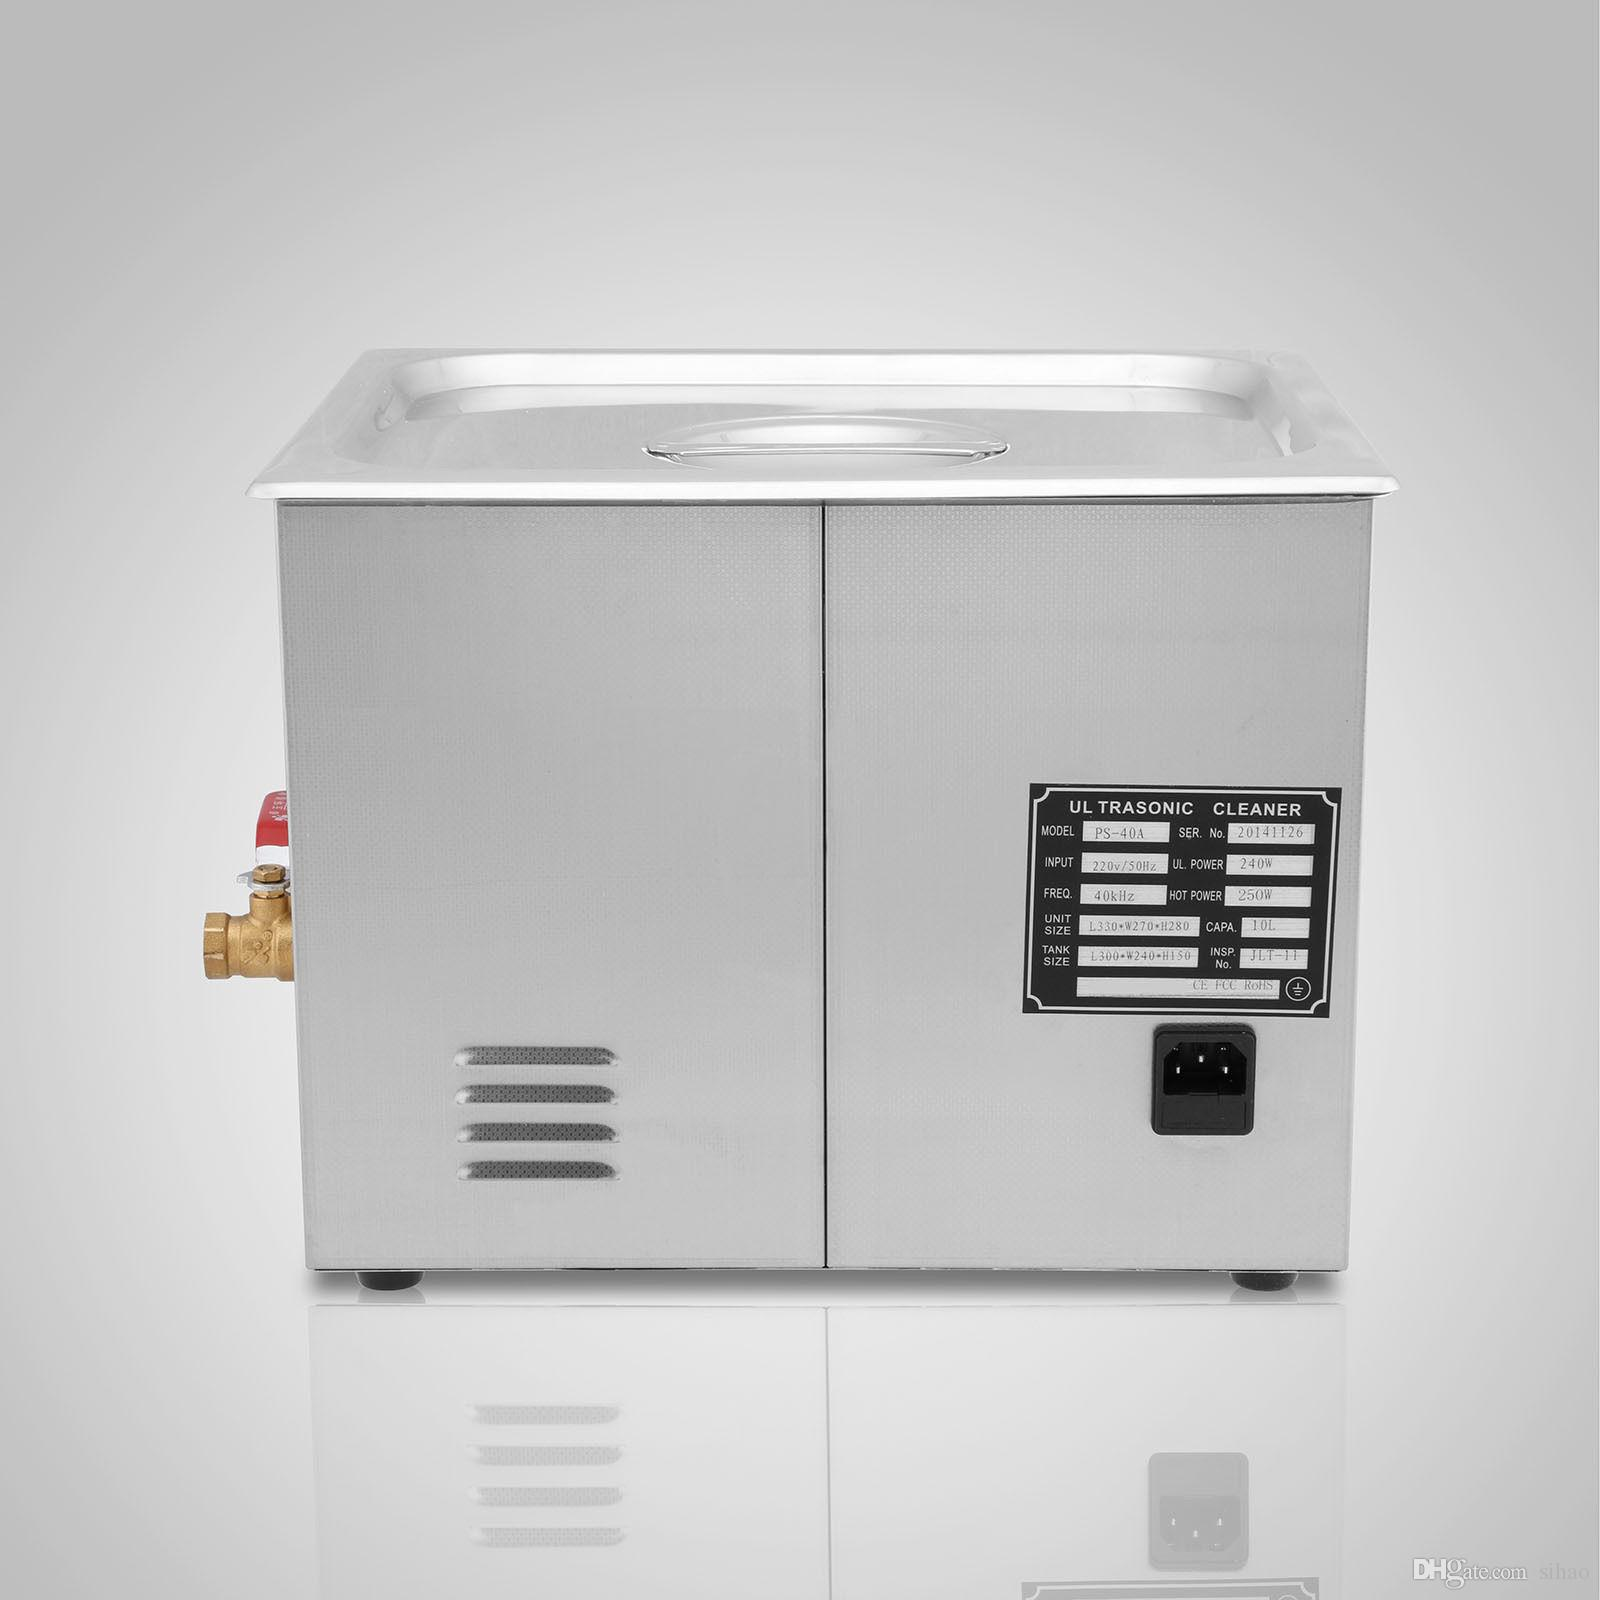 15L ULTRASONIC CLEANER DRAINAGE SYSTEM CLEANING BASKET 760 W DIGITAL LAGER TIMER WITH FLOW VALVE PERSONAL USE CLEANER MACHINE